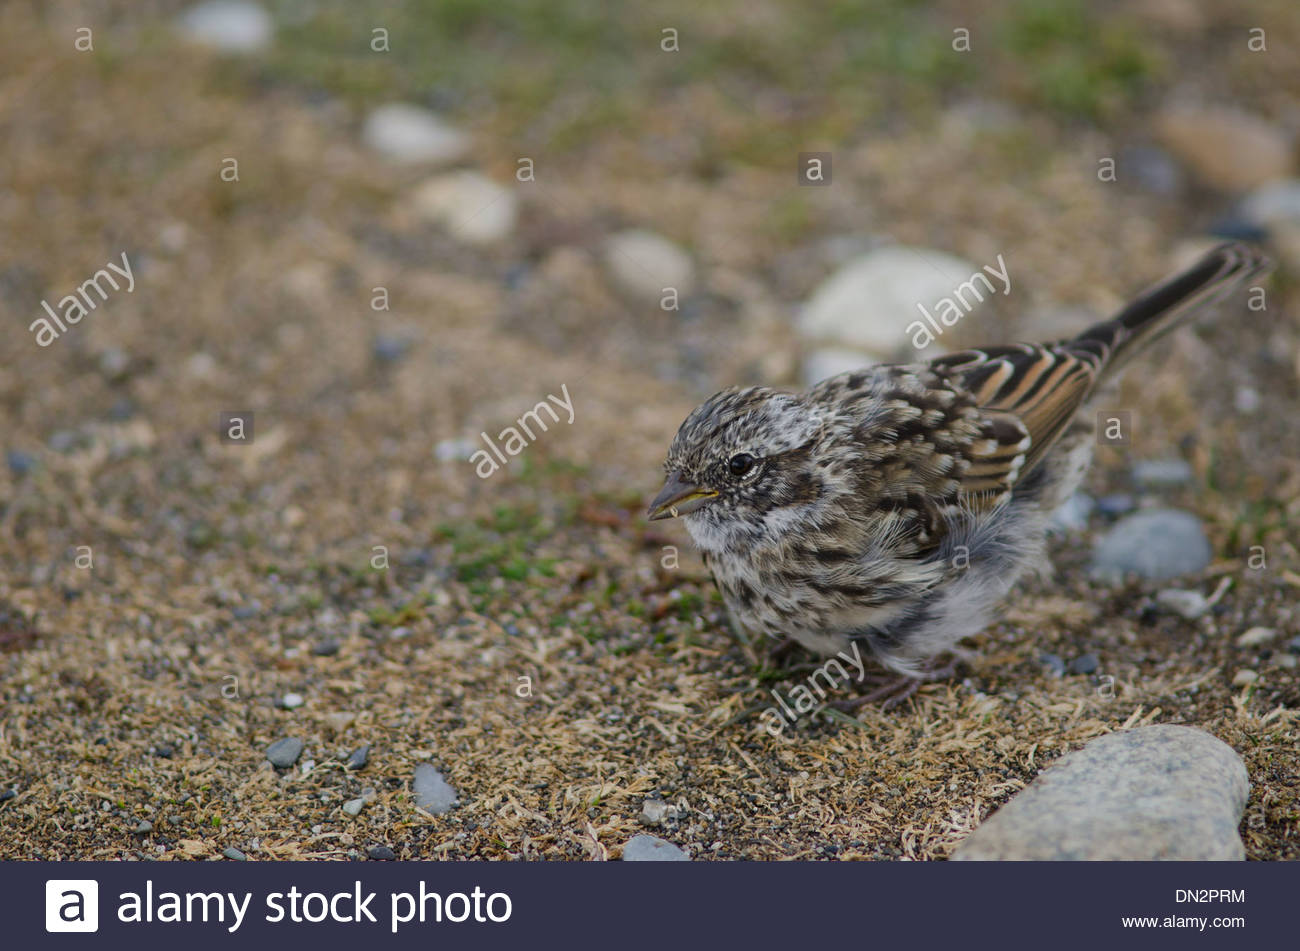 Juvenile Rufous-collared Sparrow (Zonotrichia capensis) feeding on the ground. Stock Photo